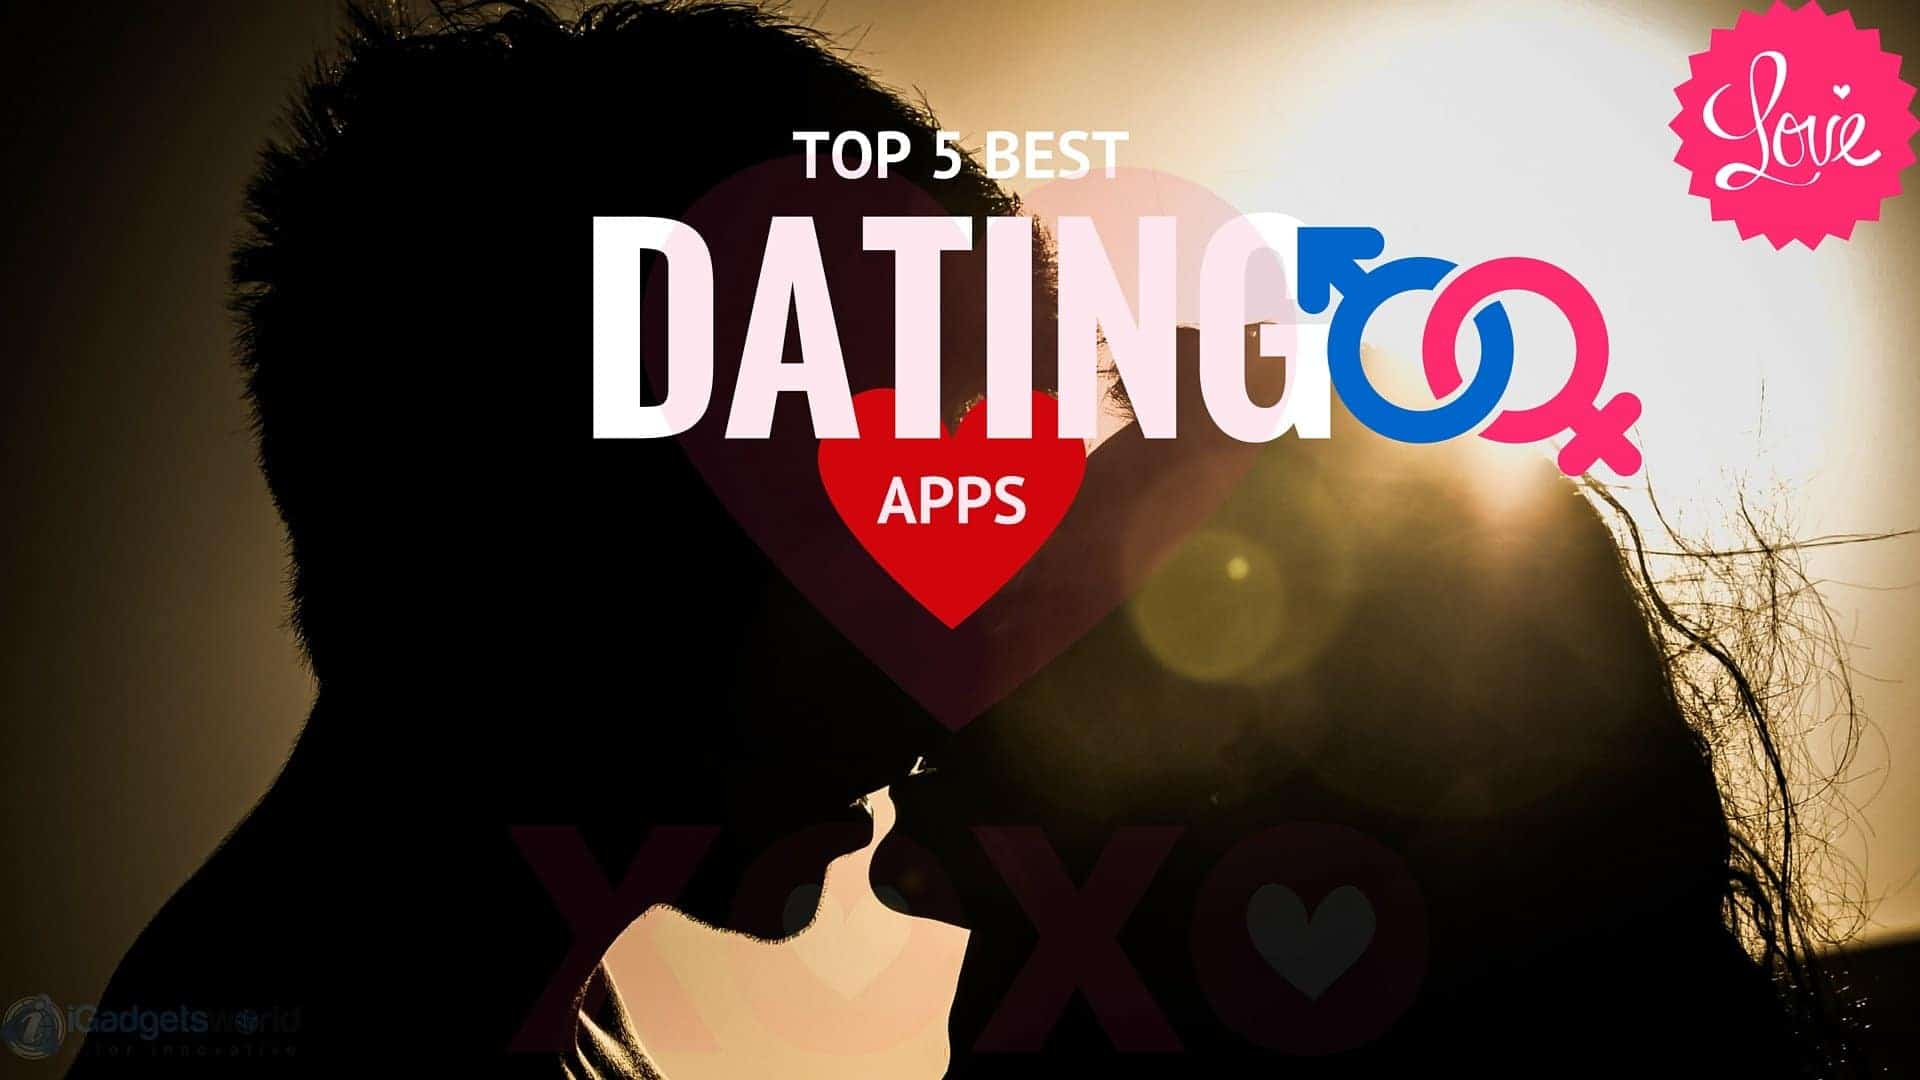 Top 5 dating-apps